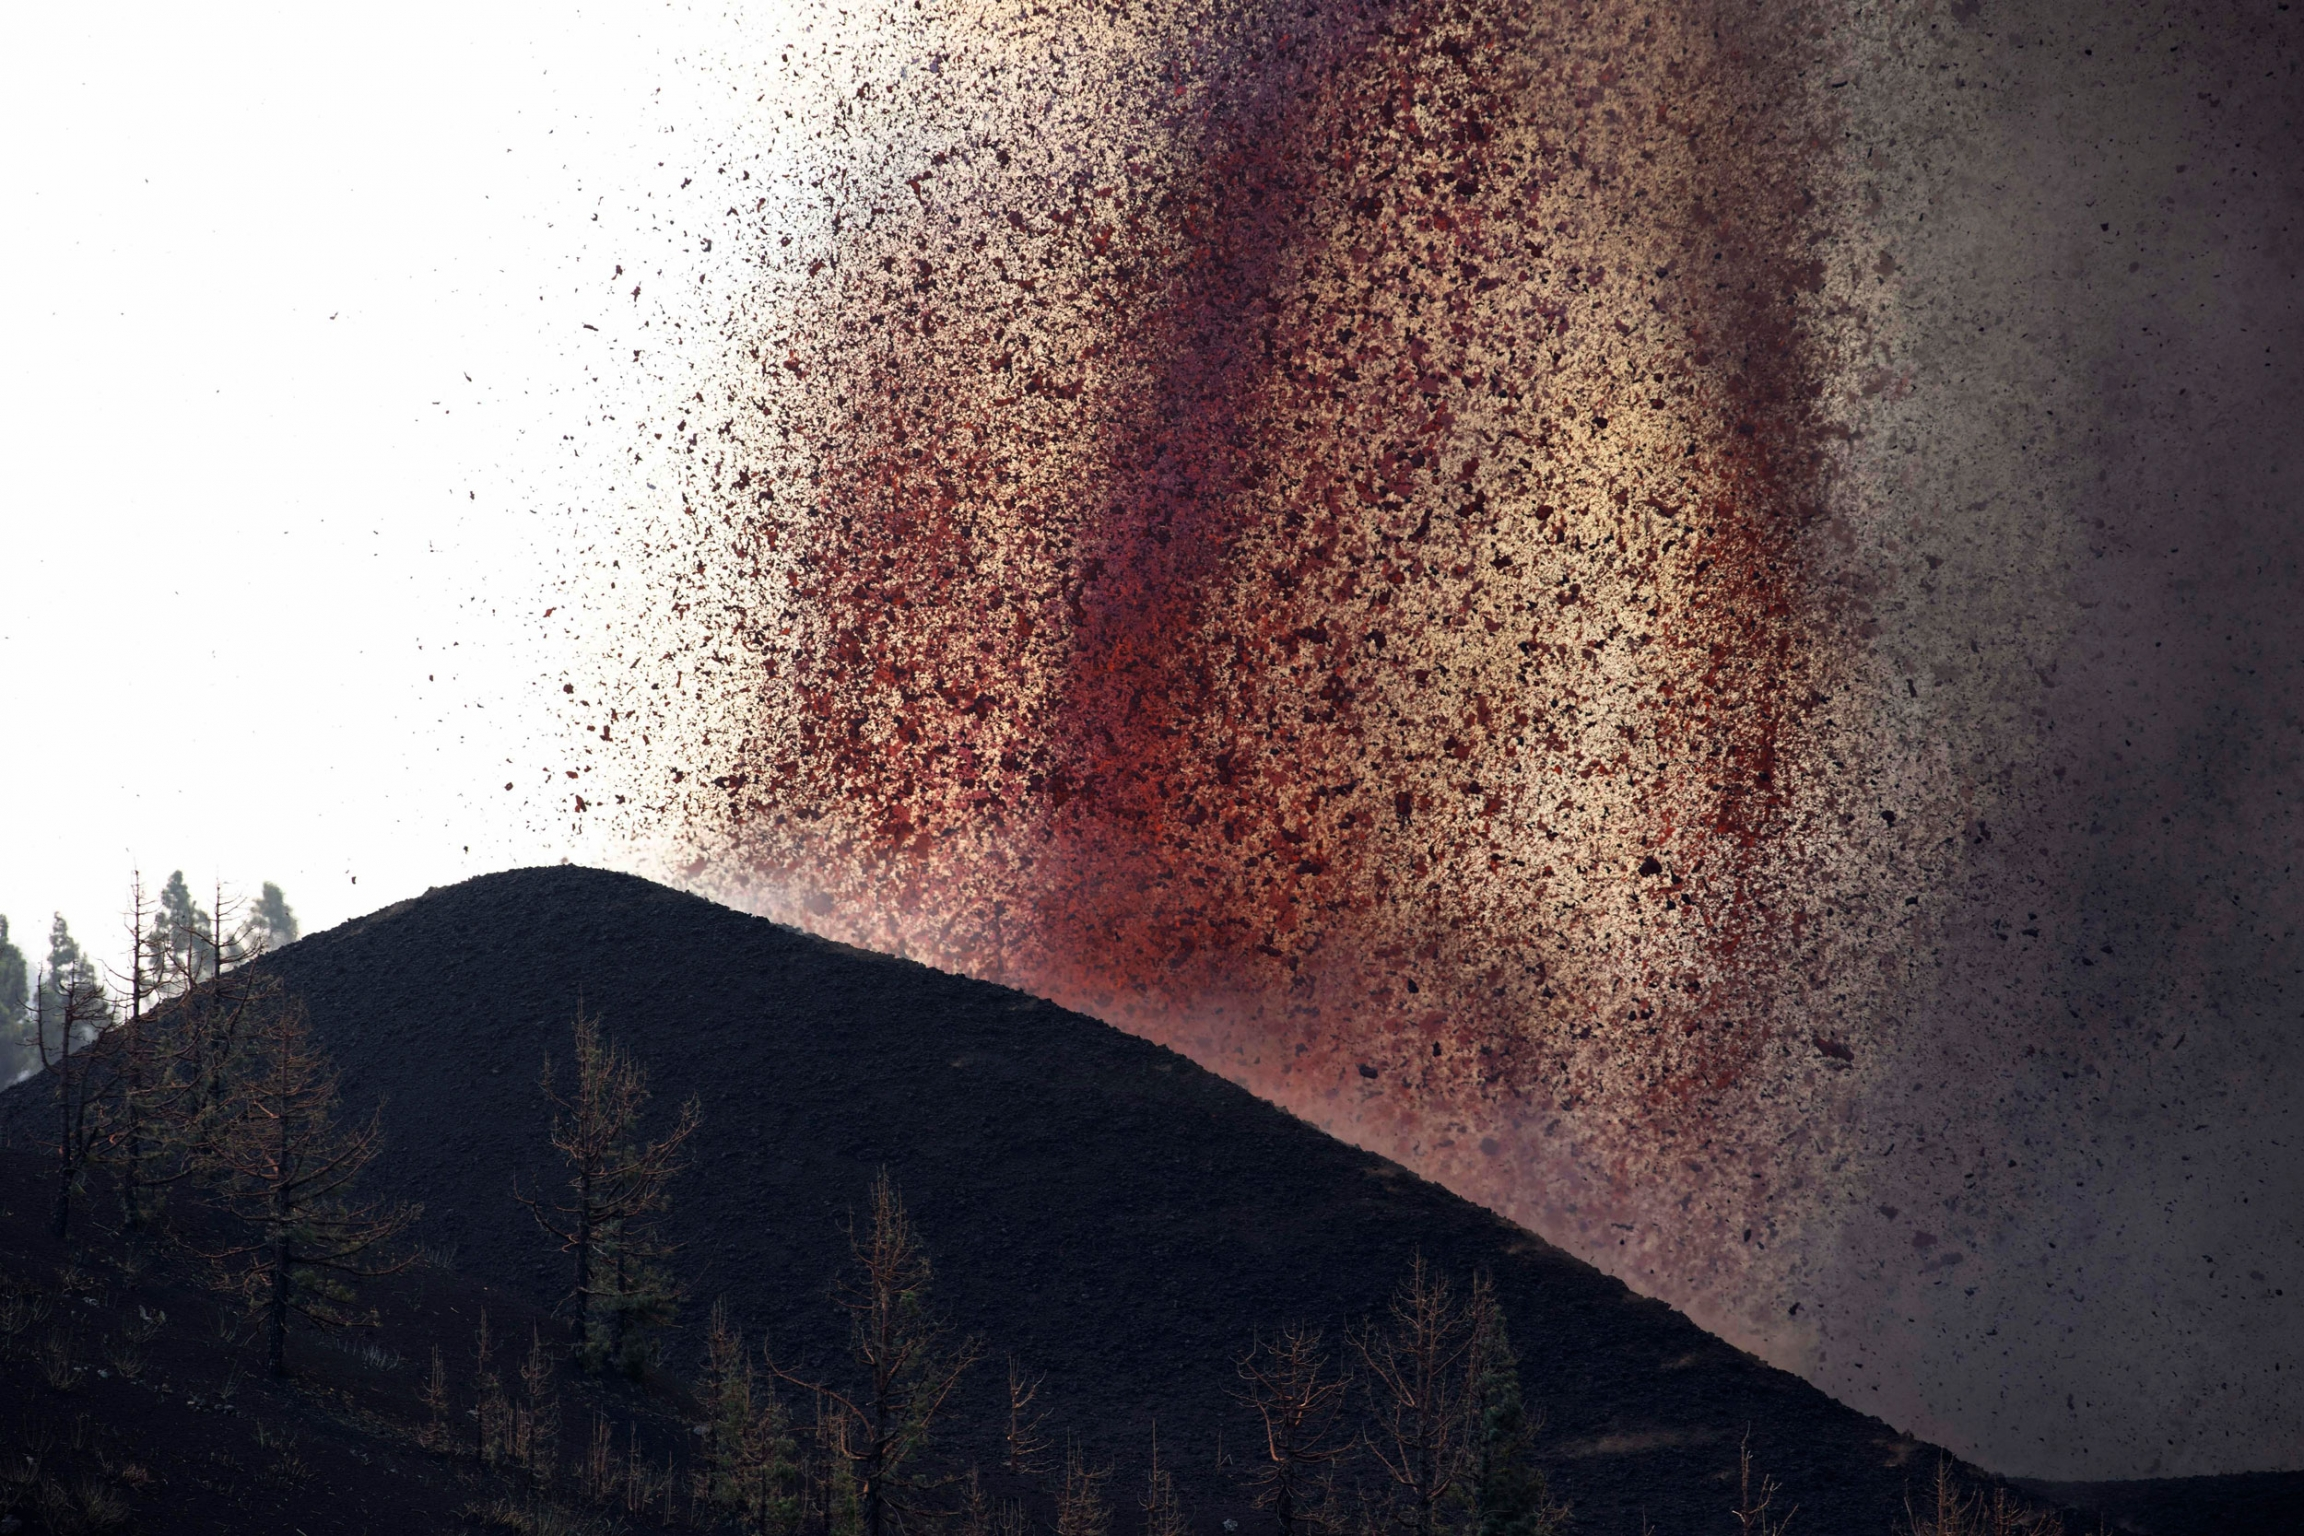 Lava flows from an eruption of a volcano near El Paso on the island of La Palma in the Canaries, Spain, of Monday, Sept. 20, 2021.